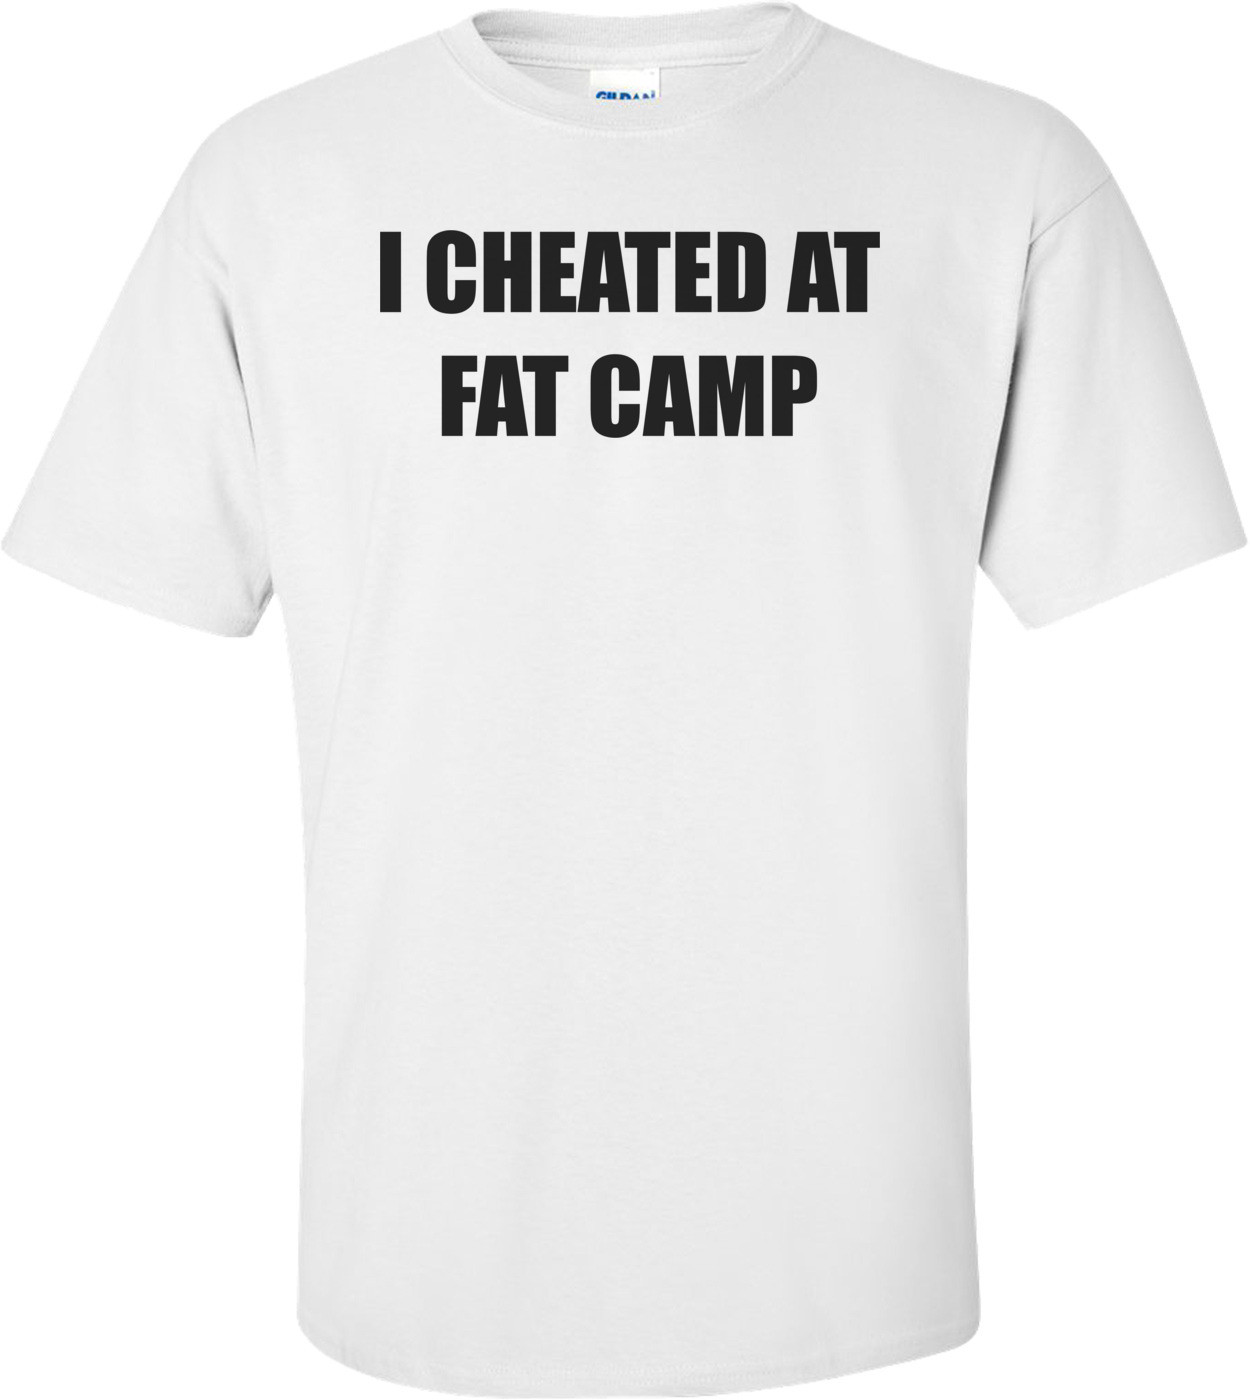 I CHEATED AT FAT CAMP Shirt